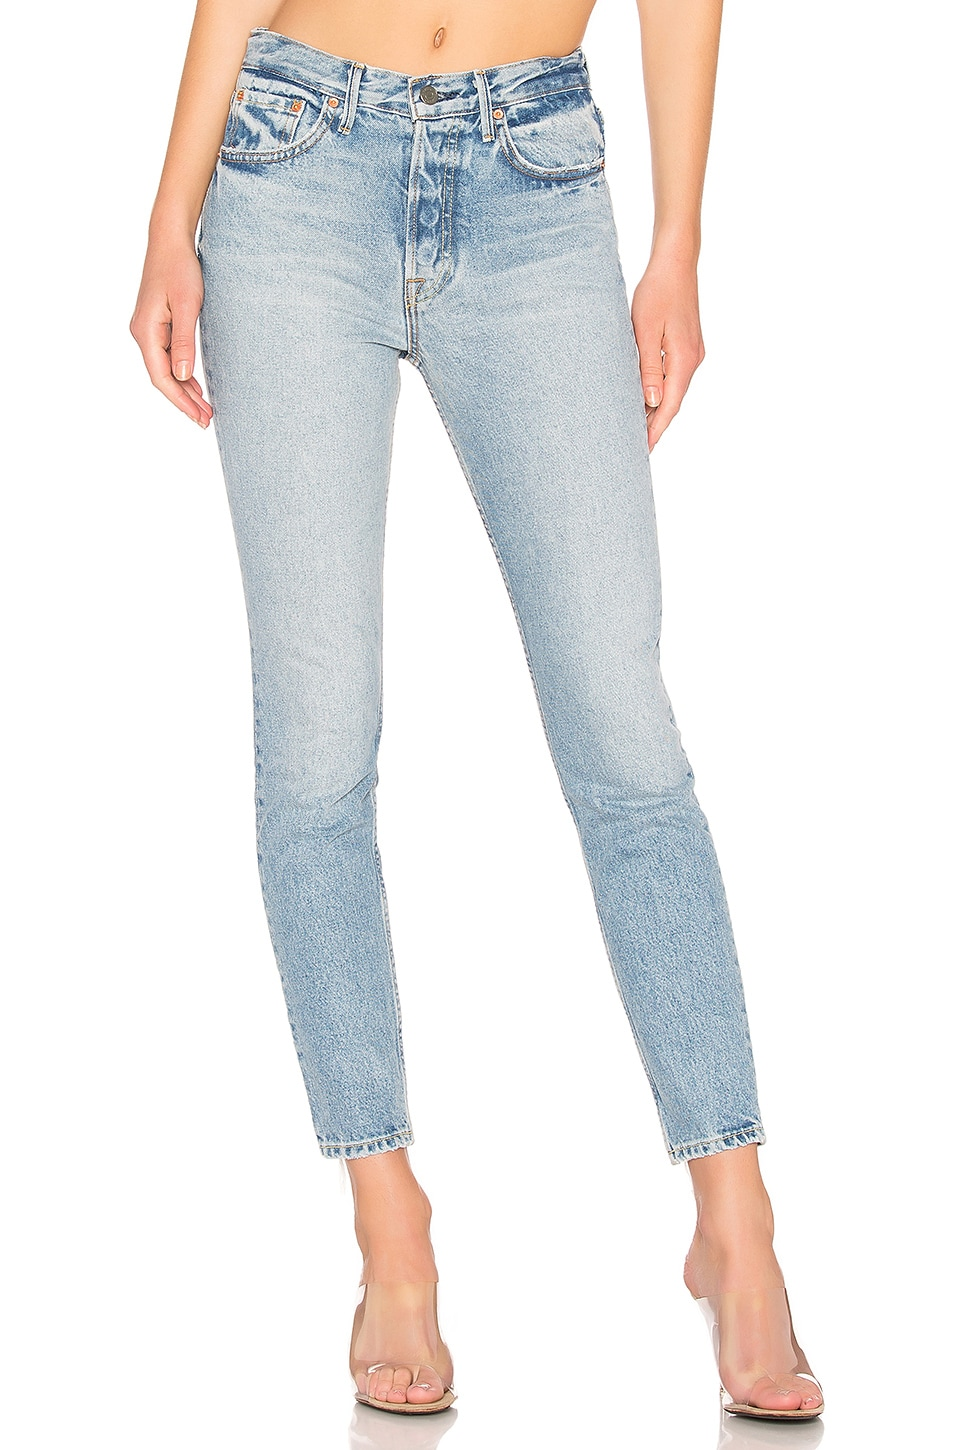 GRLFRND Karolina High-Rise Skinny Jean in New Romantic